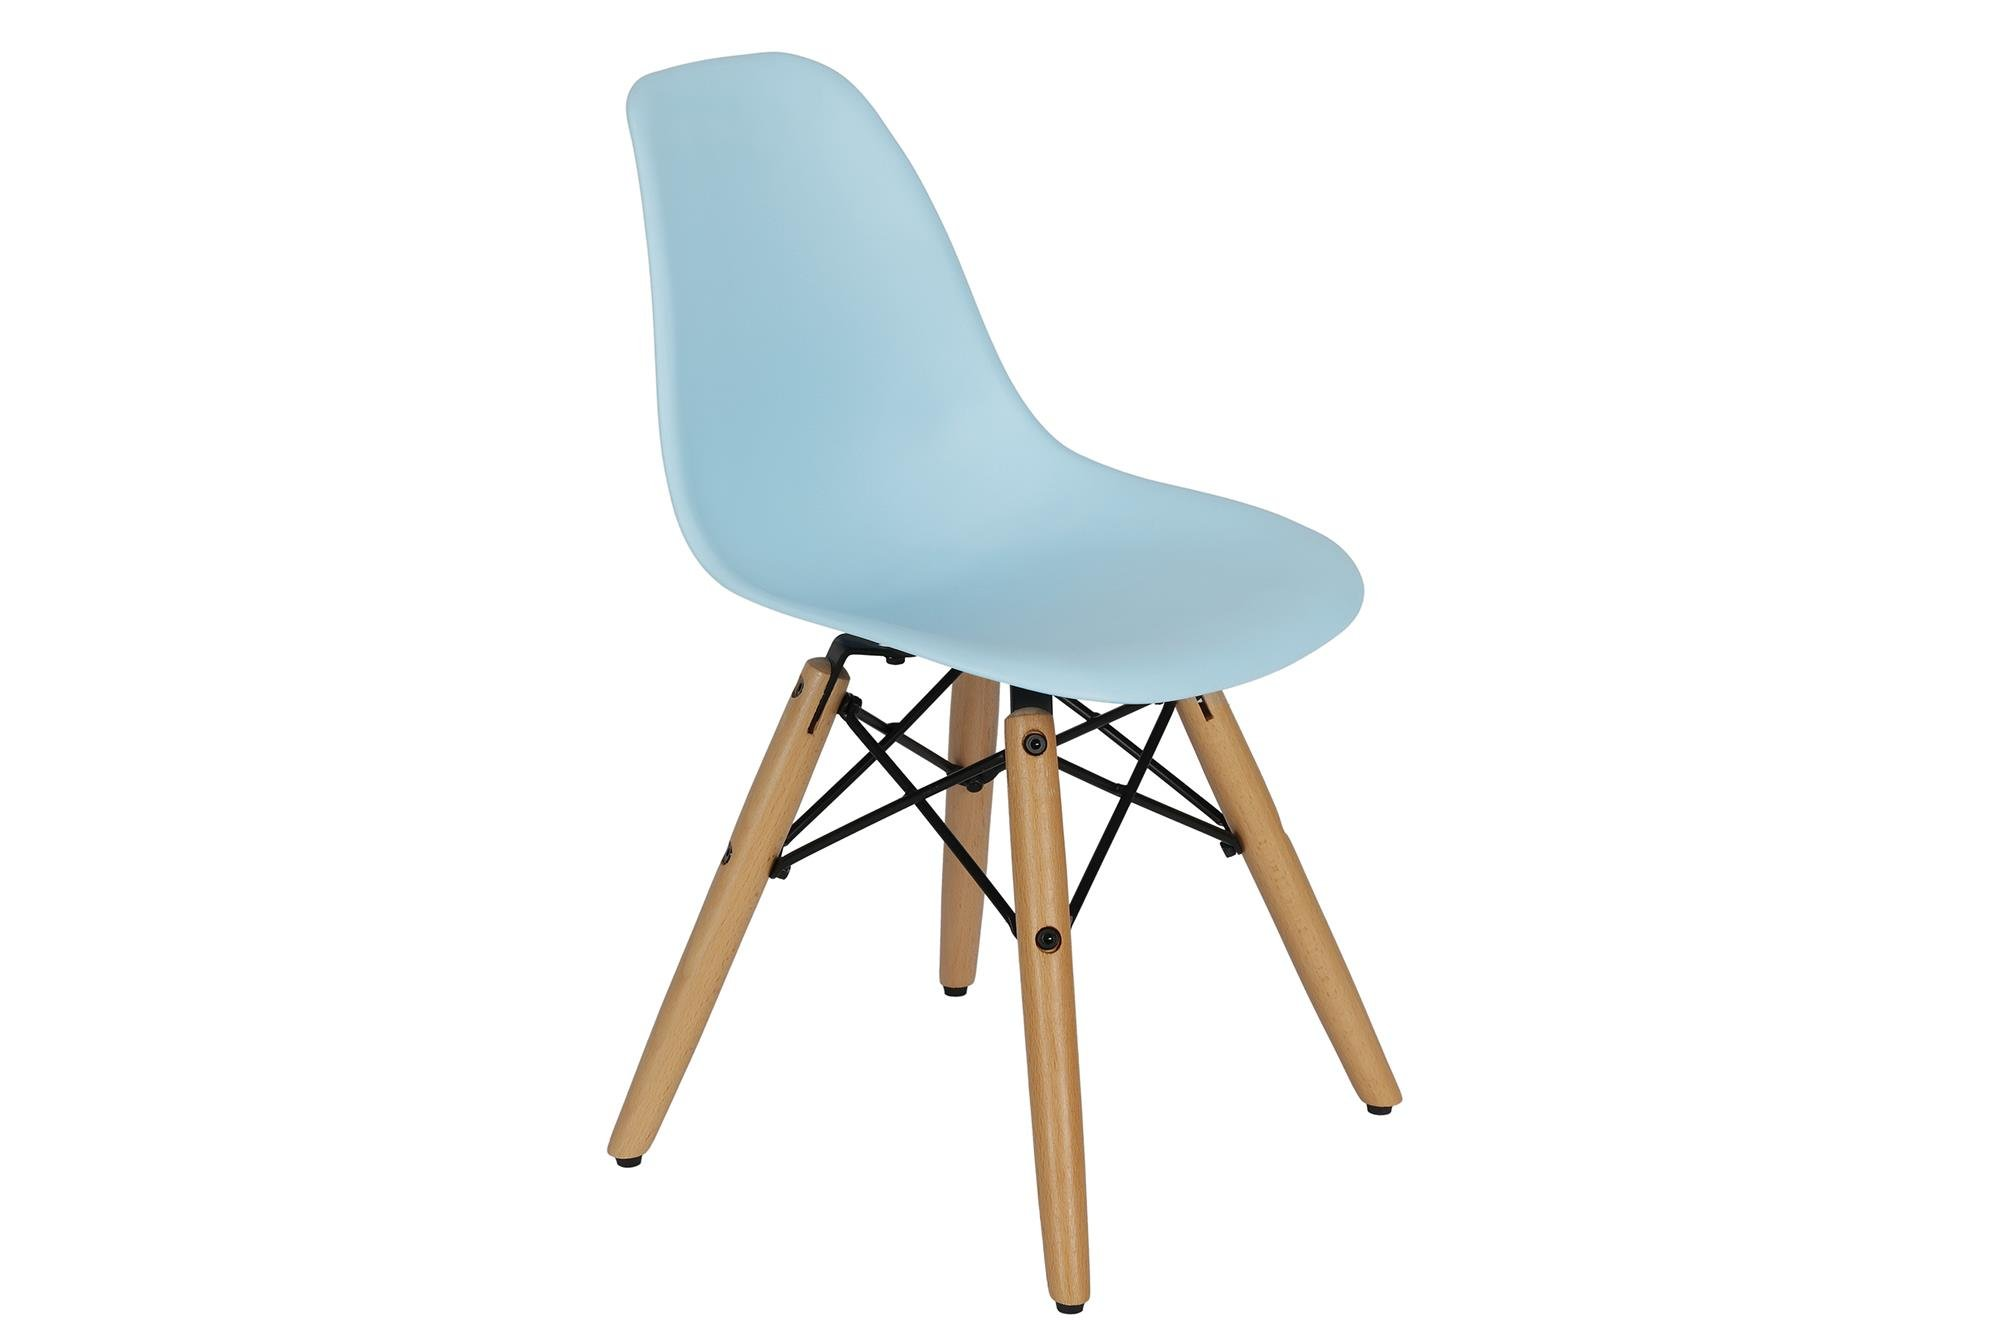 DHP Kids Molded Chair with Rounded Seat and Wood Legs, Mid Century Design, Blue